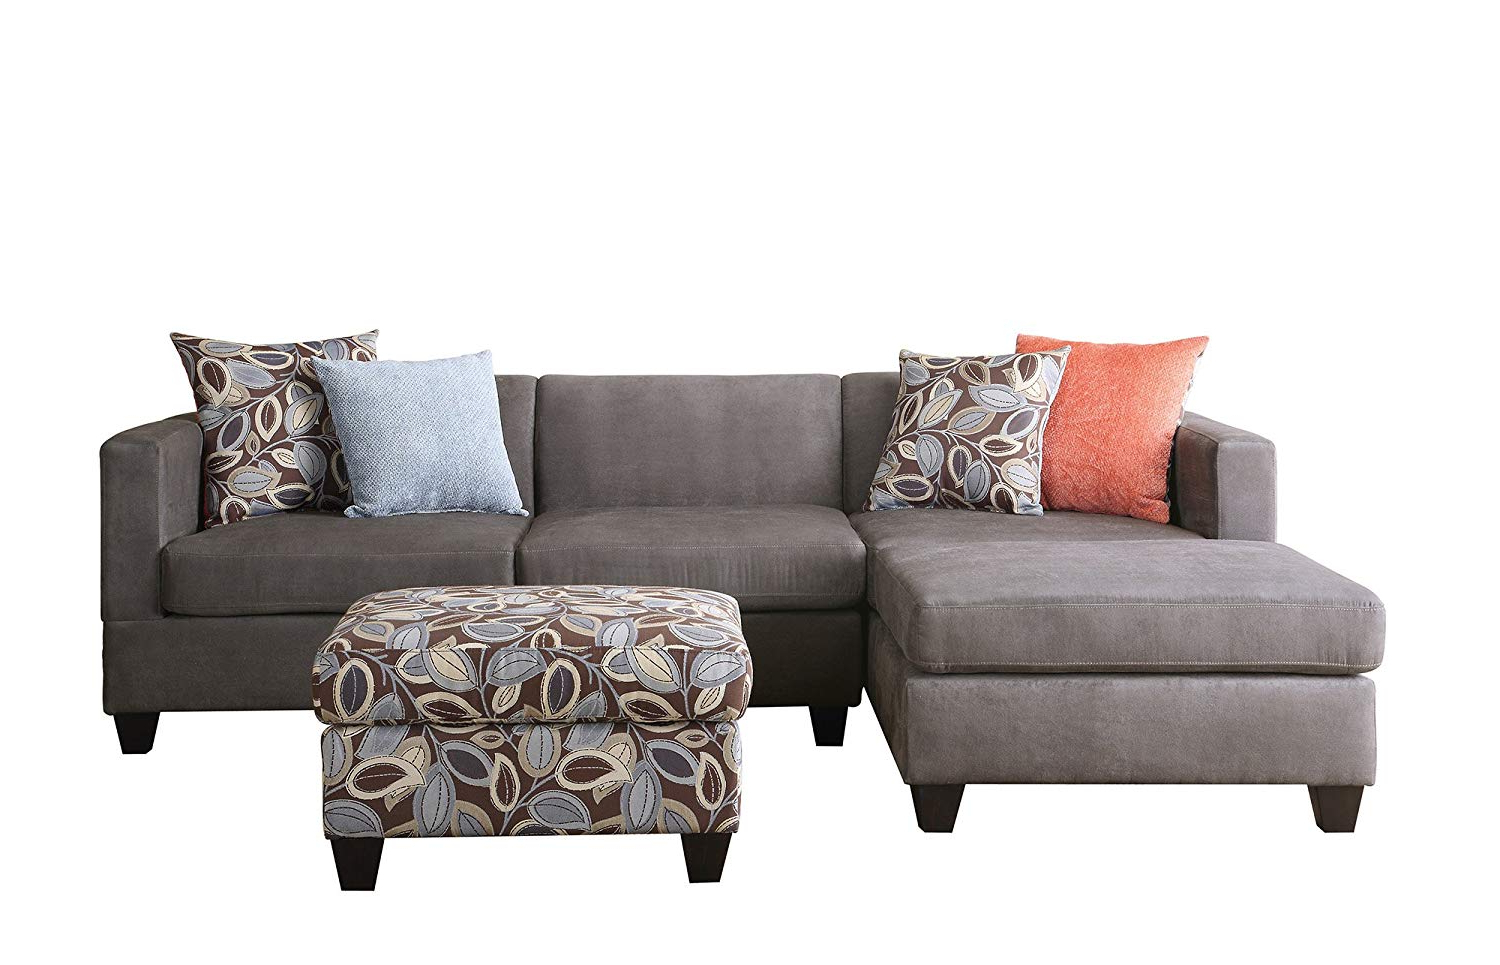 2 Piece Sectional With Chaise – Tidex In Best And Newest Delano 2 Piece Sectionals With Laf Oversized Chaise (Gallery 15 of 20)